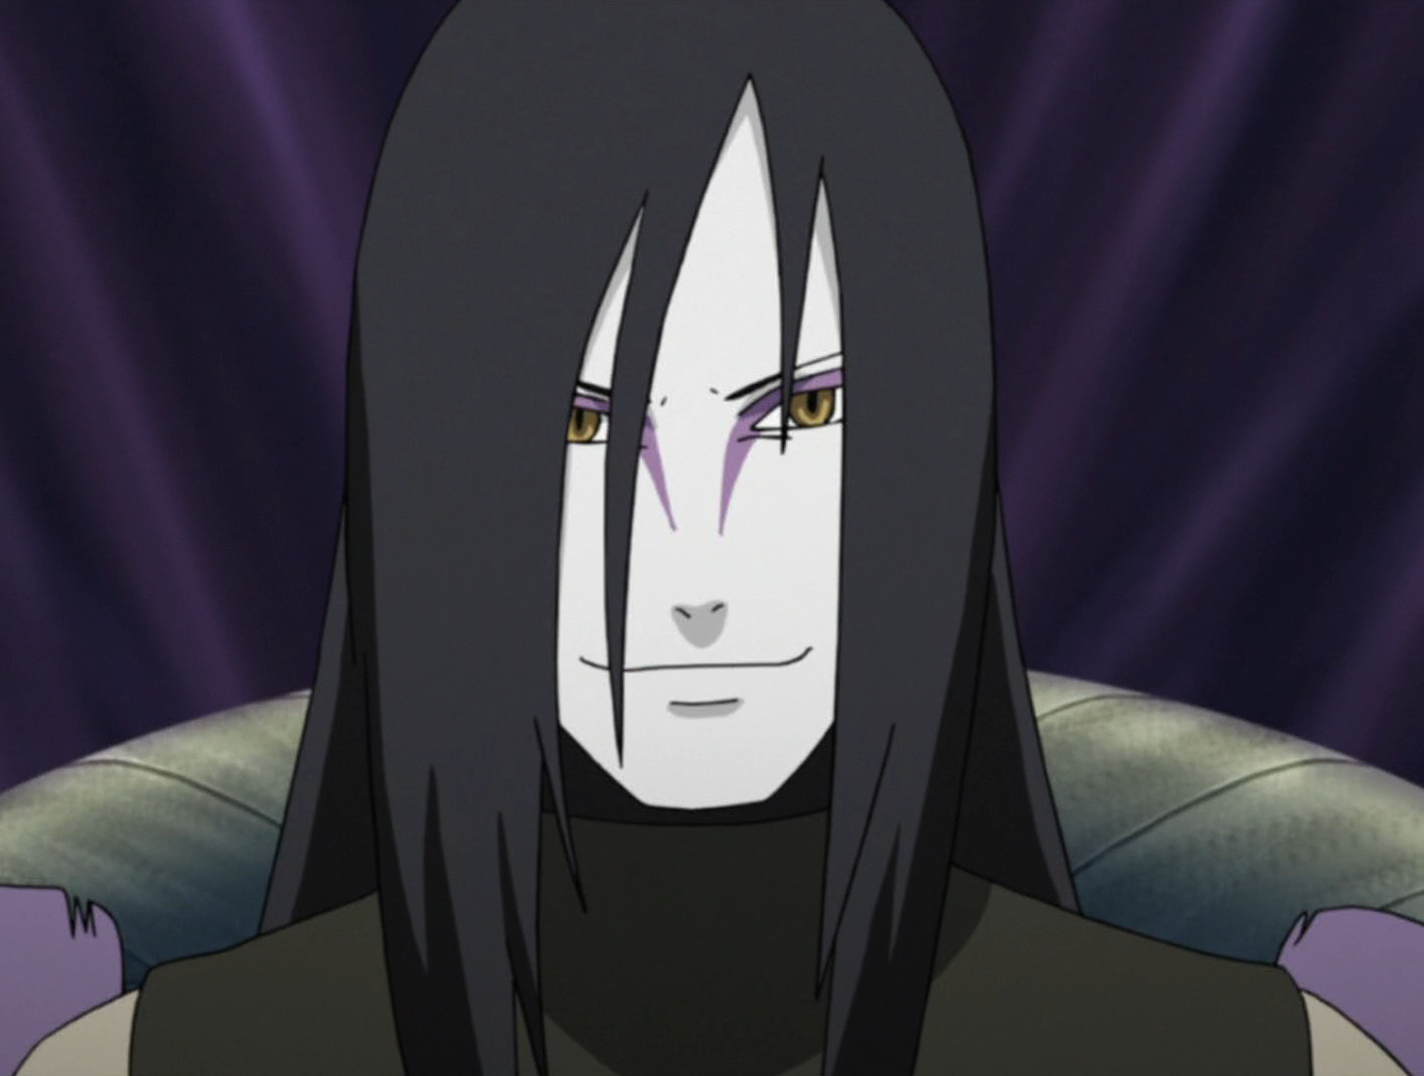 Orochimaru | Narutopedia | FANDOM powered by Wikia